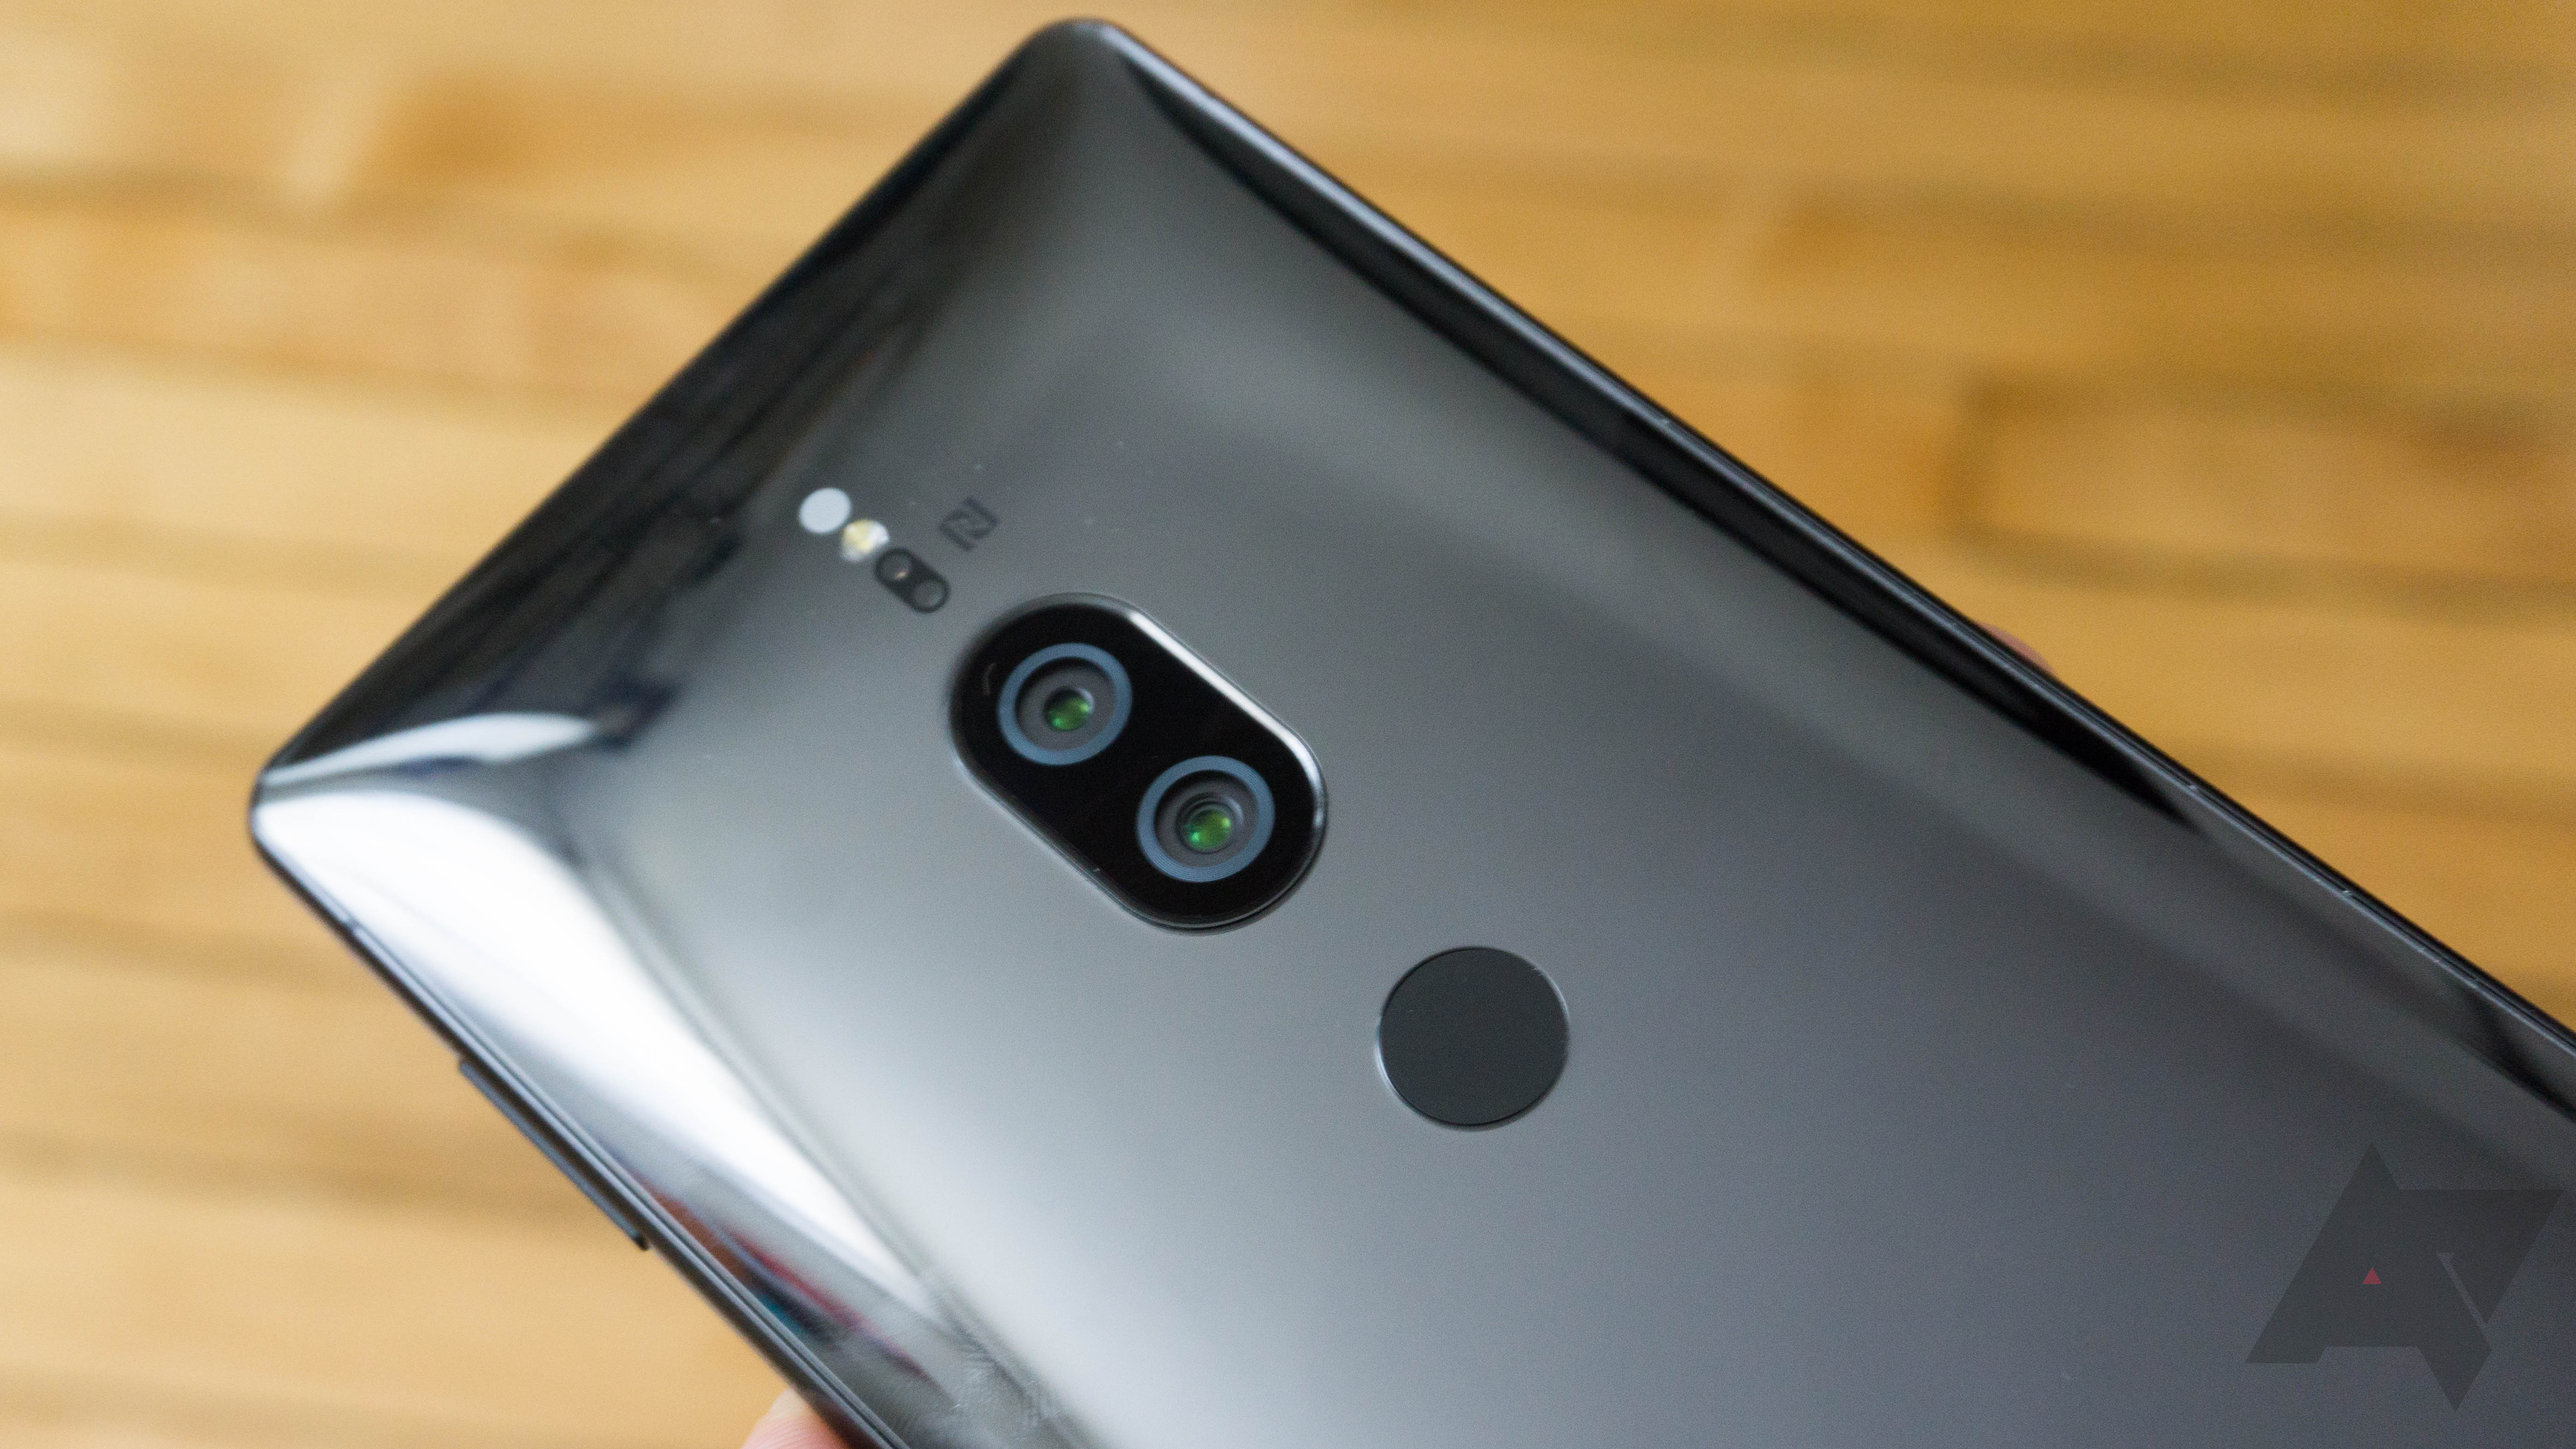 Sony Xperia XZ2 Premium review: A Sony vanity project and